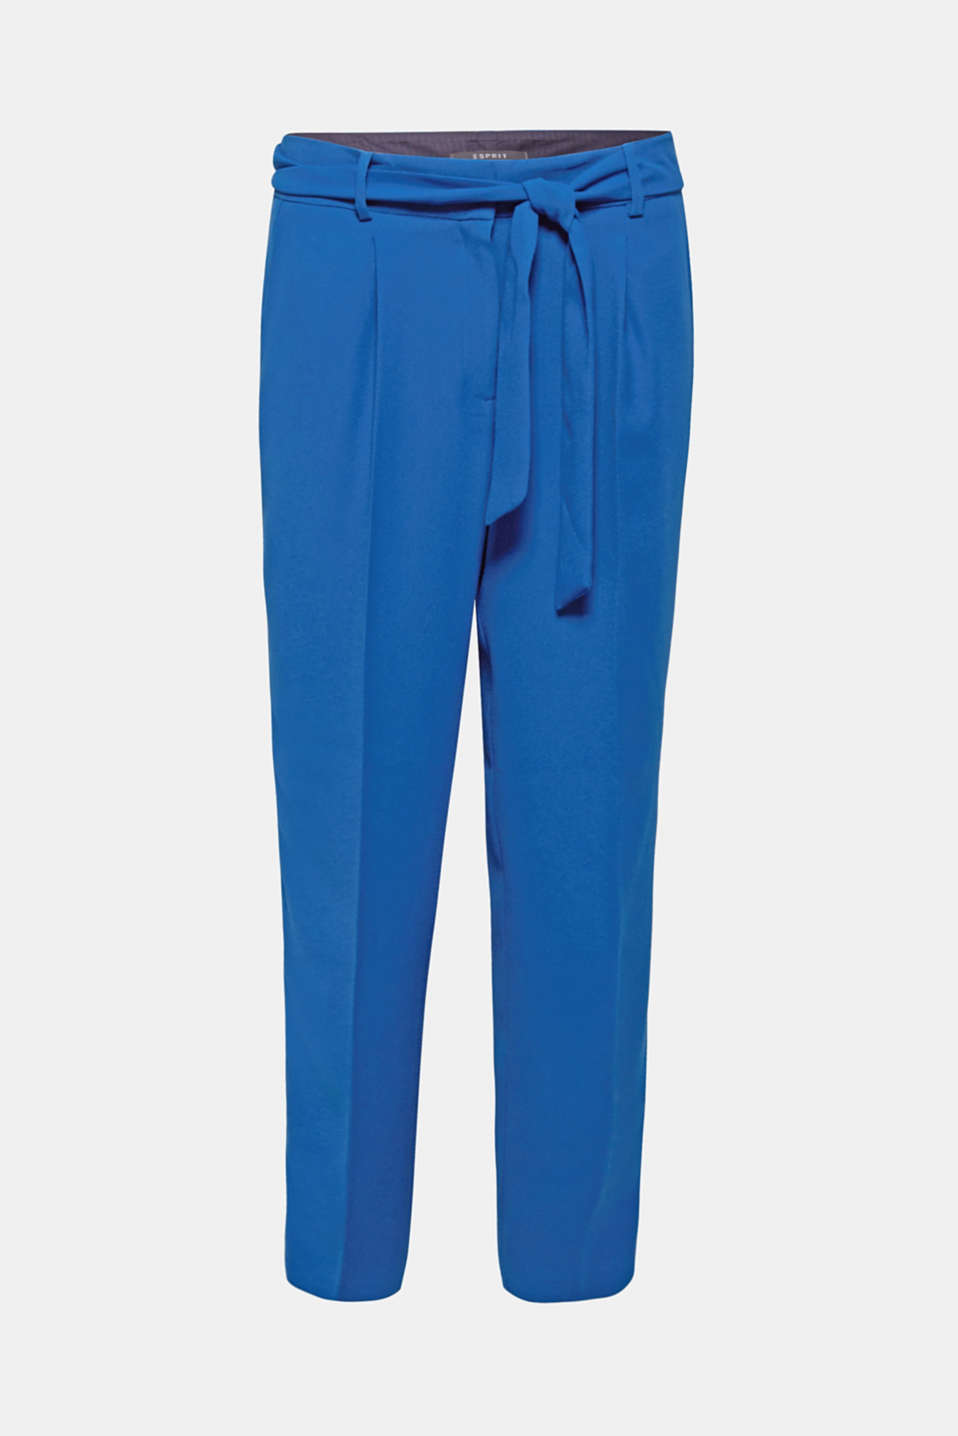 Super soft and casually chic: these flowing, cropped crêpe trousers with a tie-around belt are comfortable yet extremely fashionable!